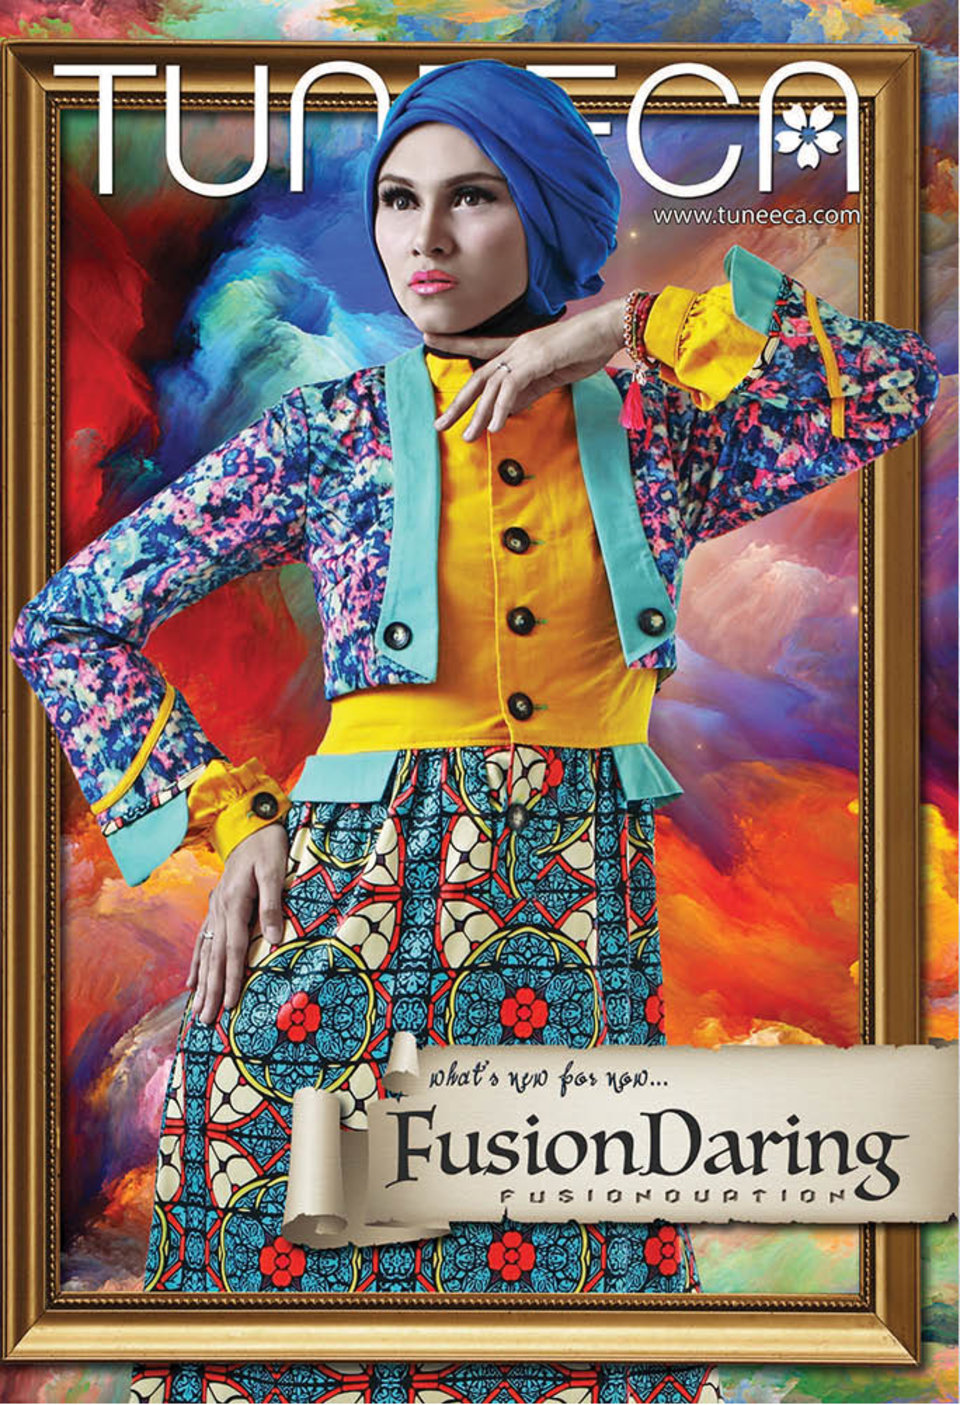 FUSHIONDARING_CATALOG_1